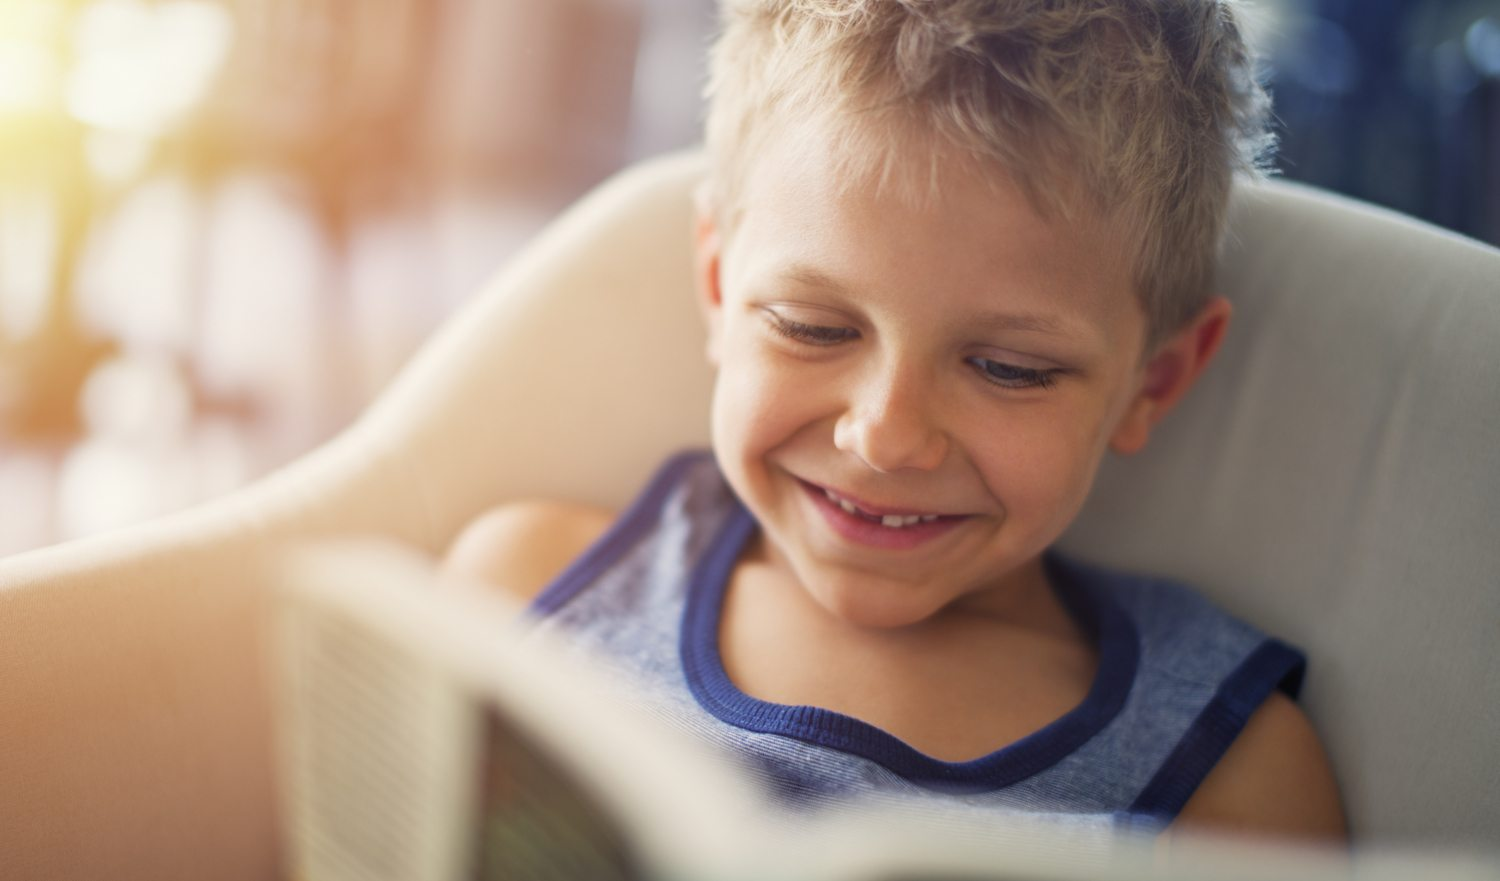 Closeup portrait of a little boy aged 6 reading a book. The boy is sitting in an armchair and is smiling, showing a missing tooth.